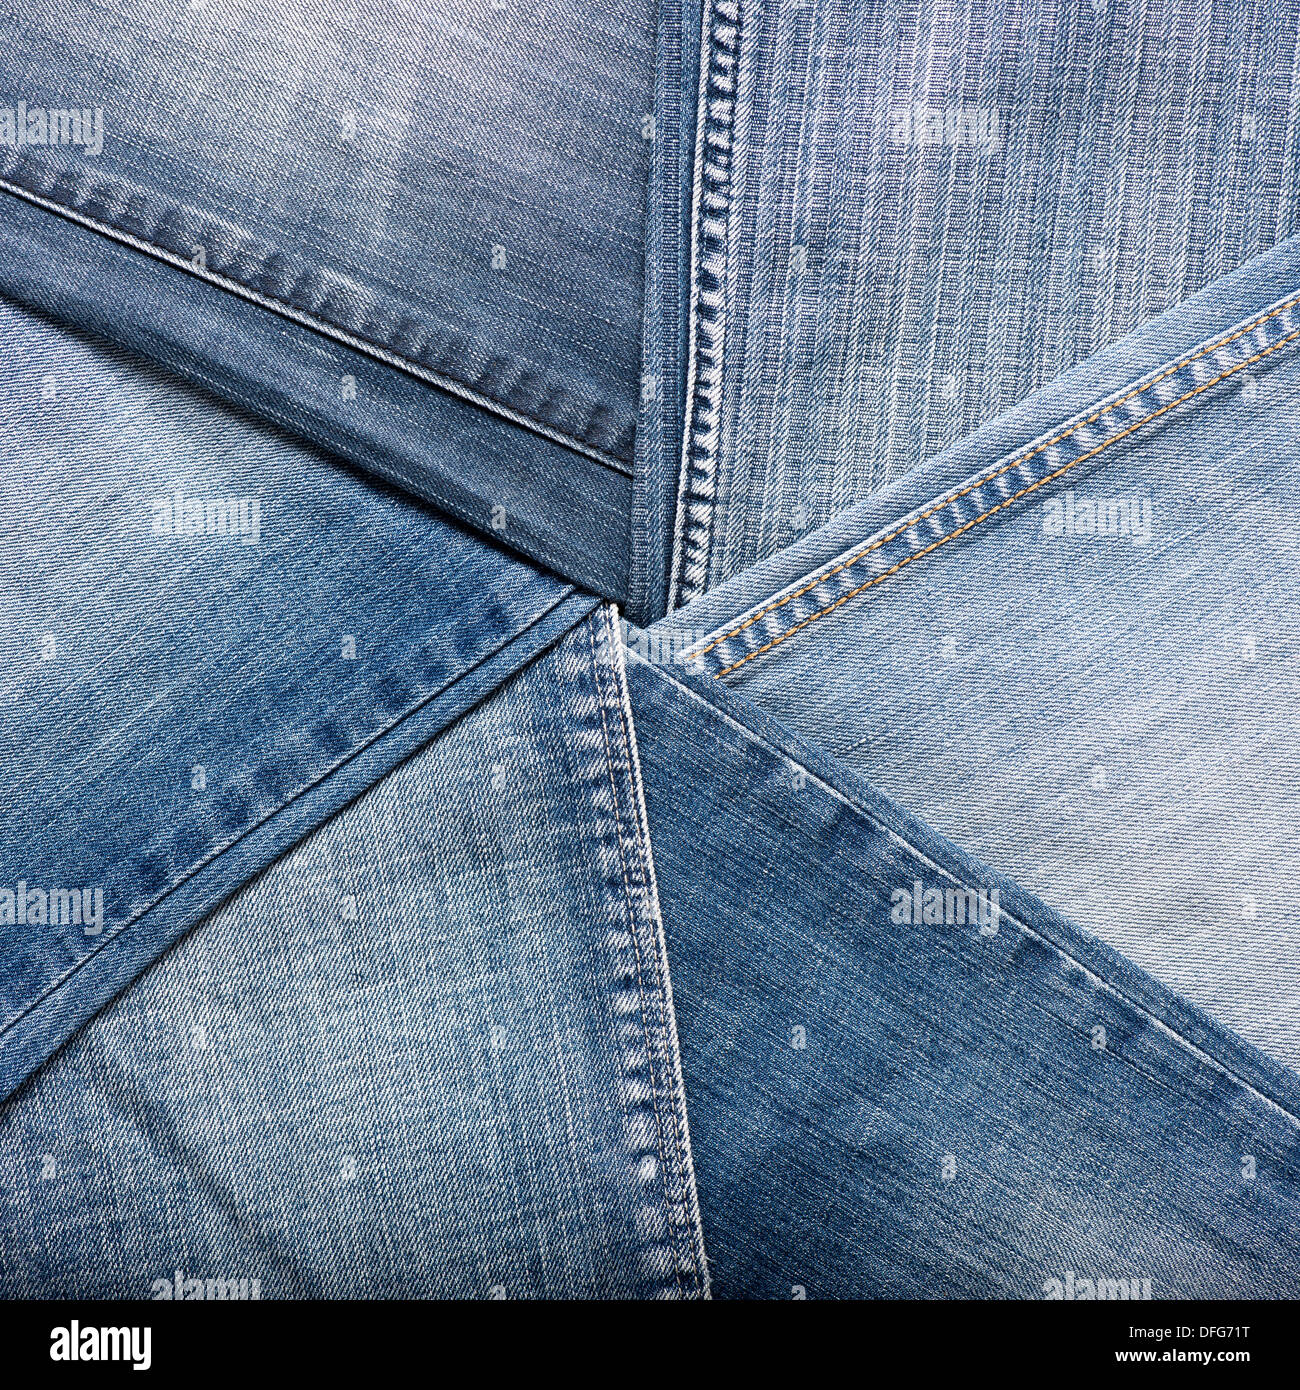 Blue denim jeans texture, background - Stock Image